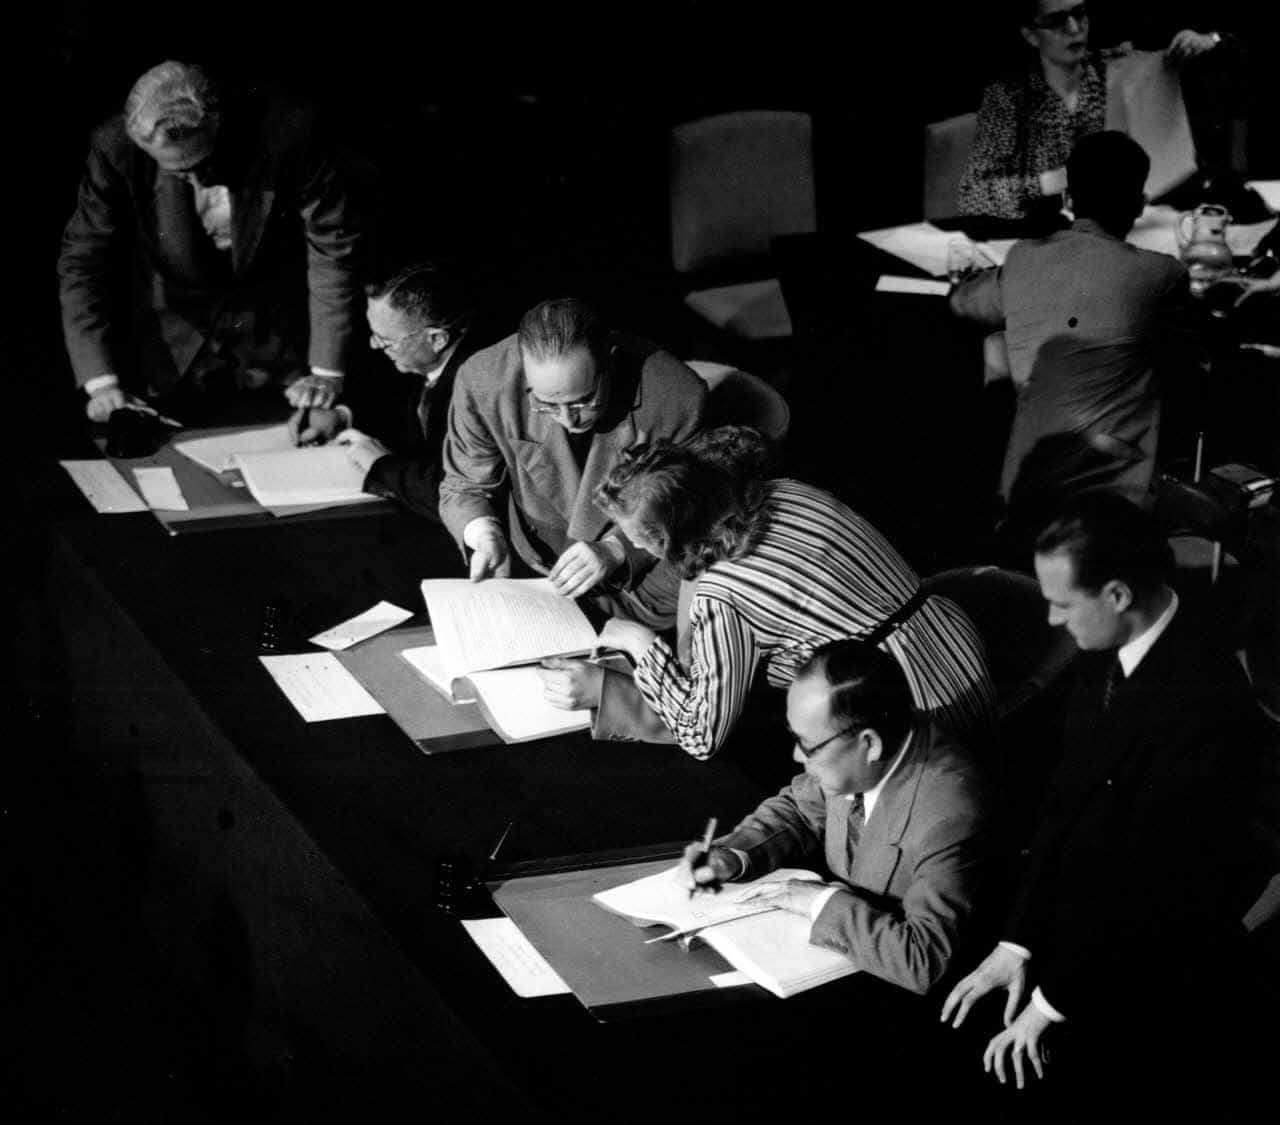 Country delegates signed global health agreements, including the WHO constitution, at the International Health Conference held in New York in June and July 1946. (WHO/UN)